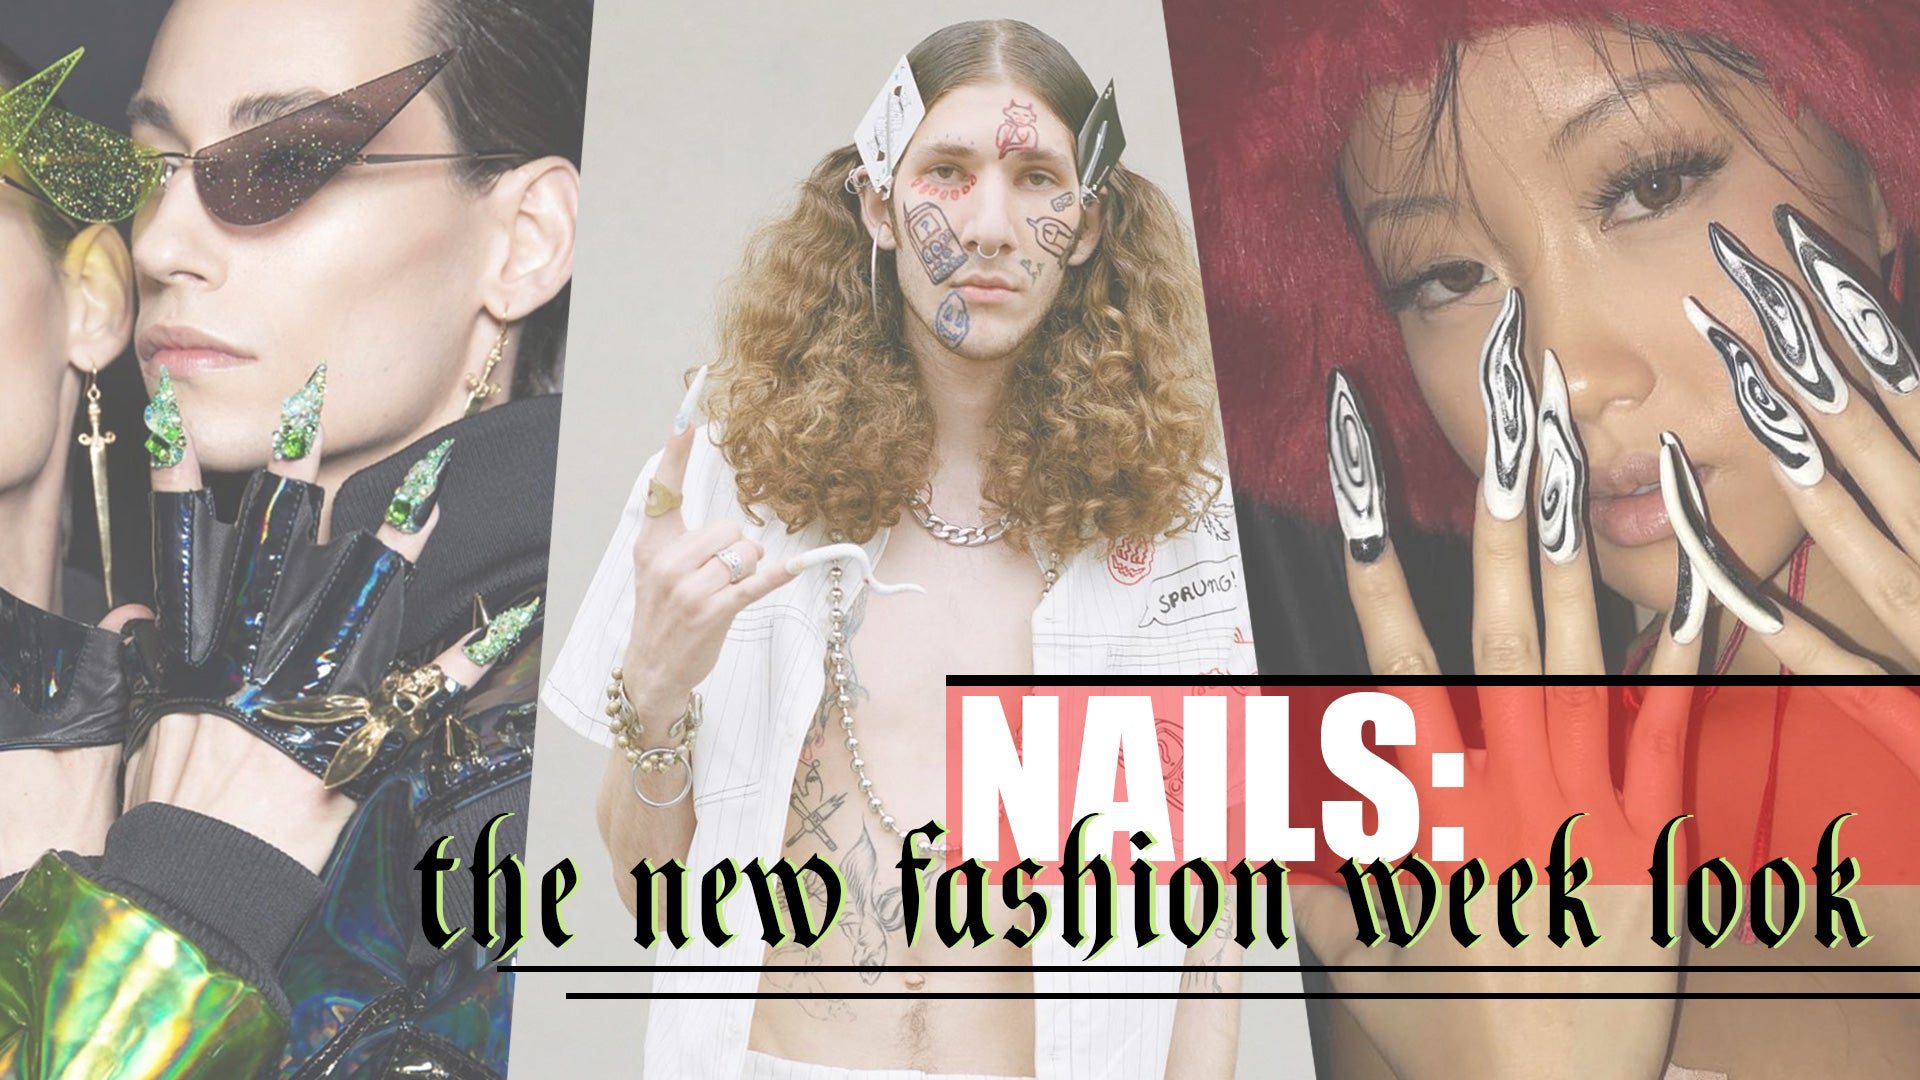 Nails - The new fashion week look